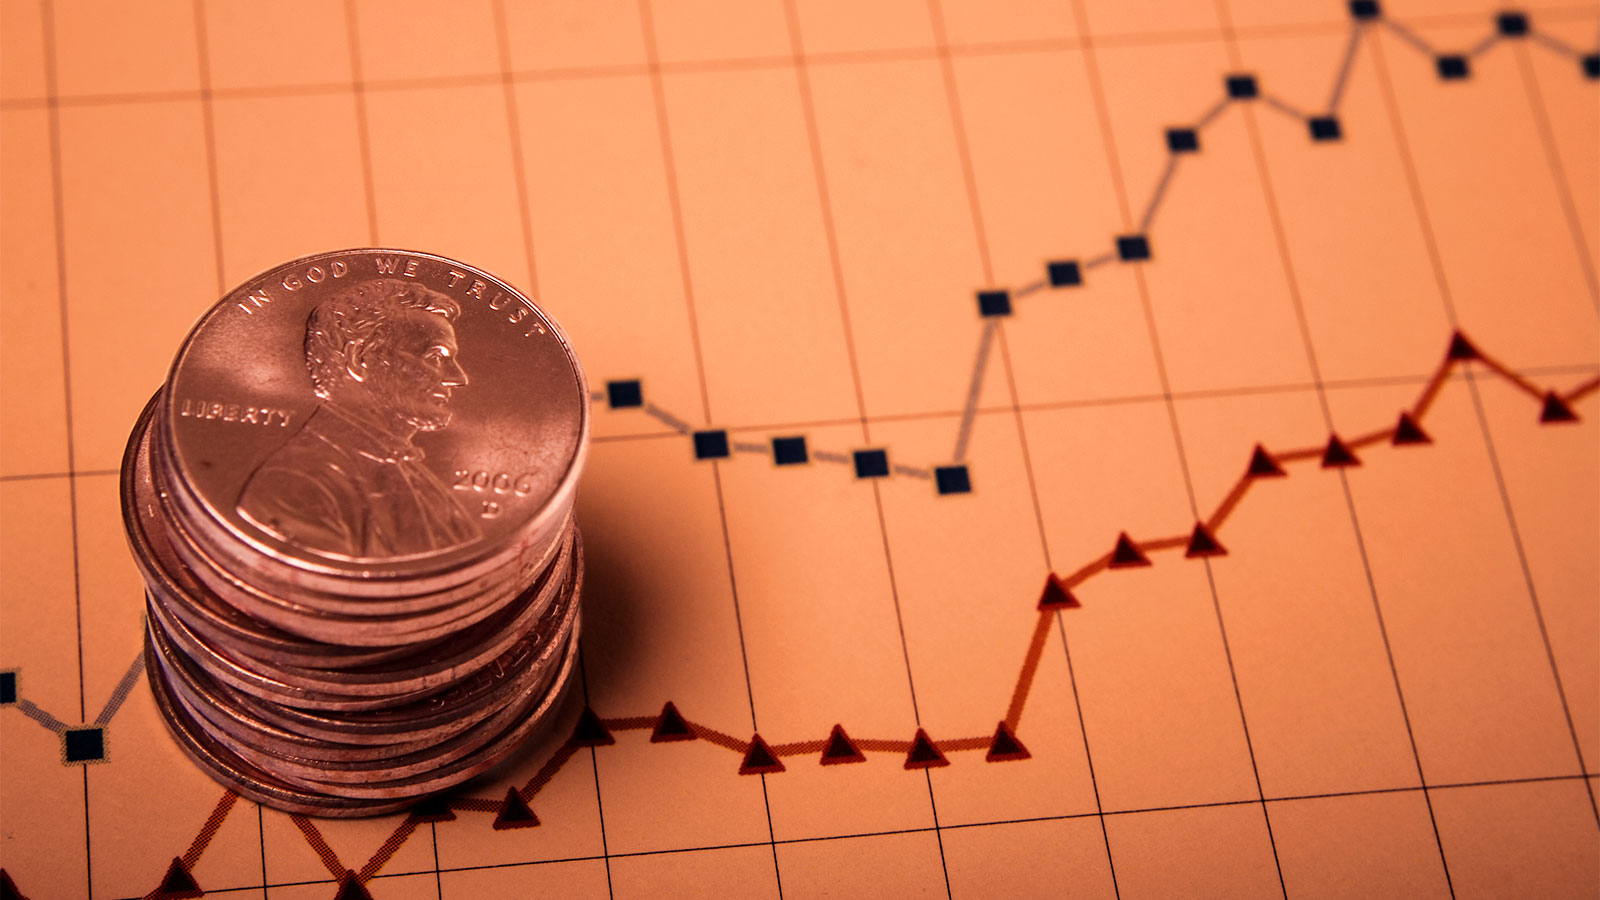 4 Penny Stocks To Add To Your Watchlist in 2021